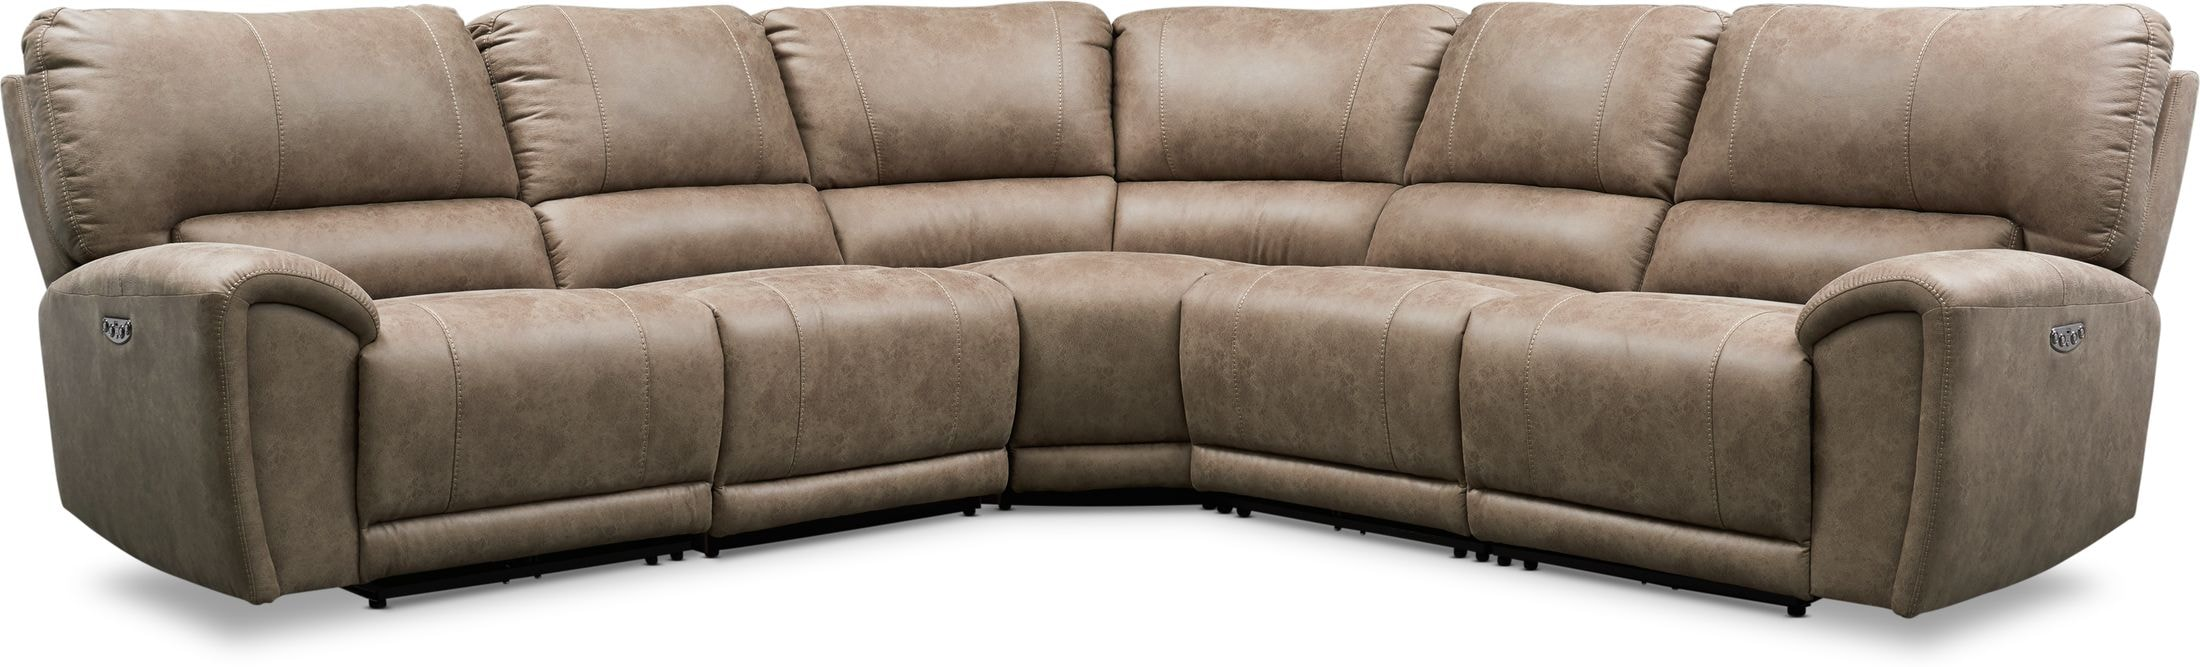 Living Room Furniture - Gallant 5-Piece Dual-Power Reclining Sectional with 3 Reclining Seats